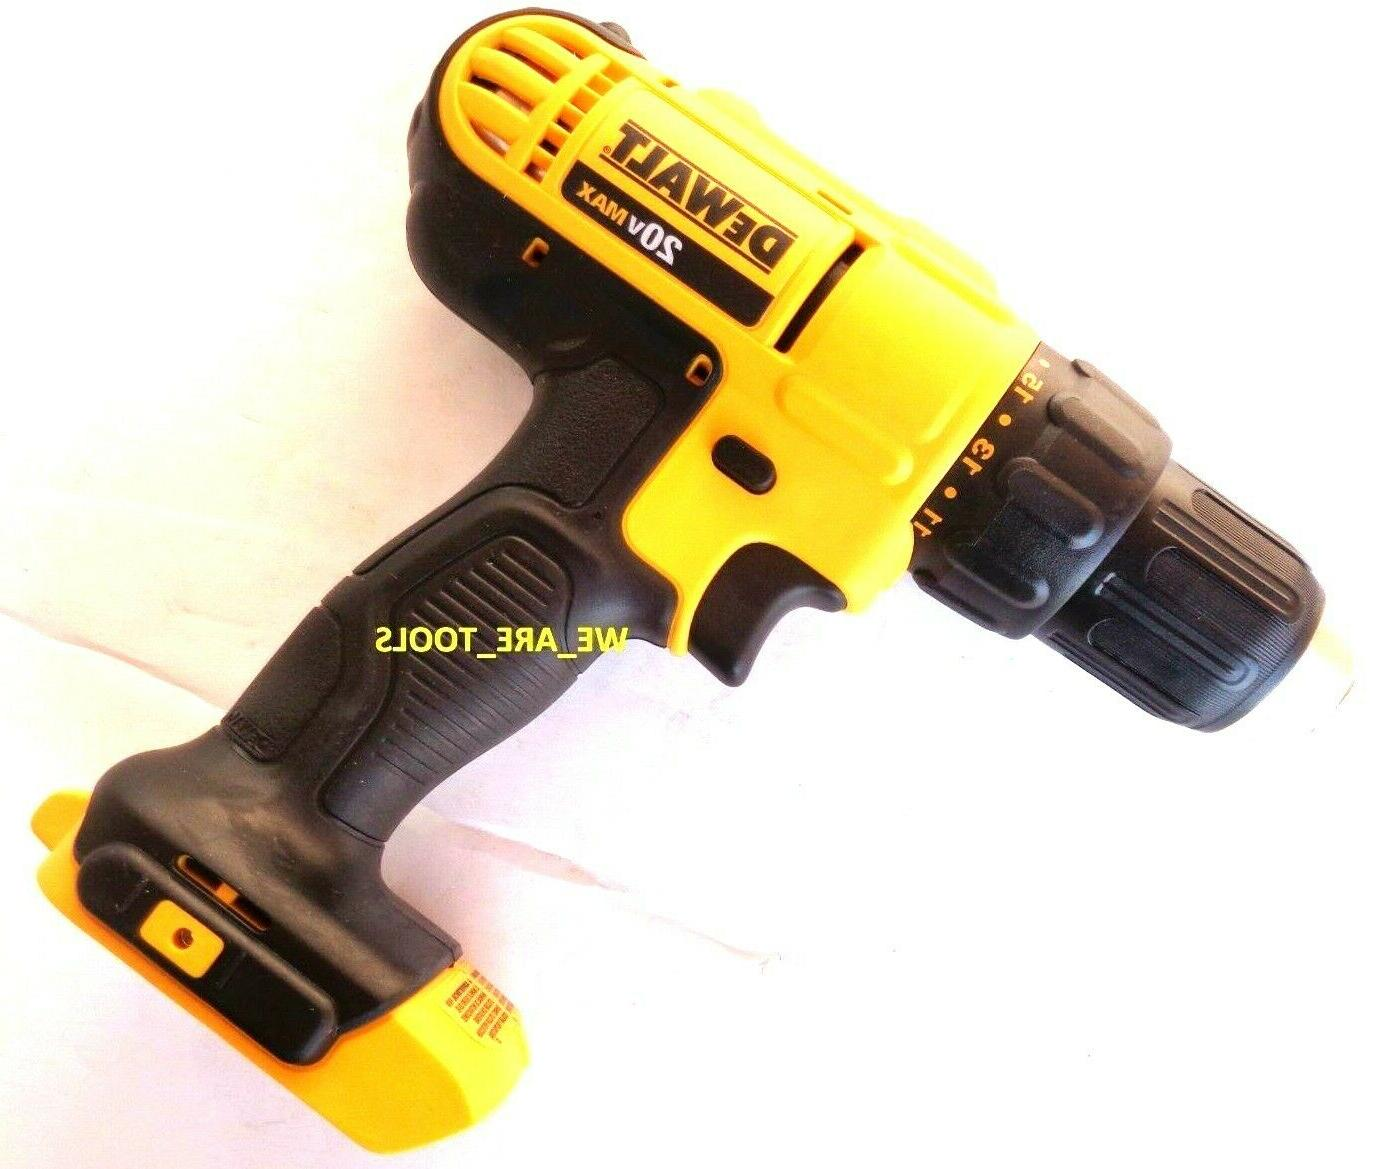 New DCD771 Compact Drill 1/2 Cordless 20